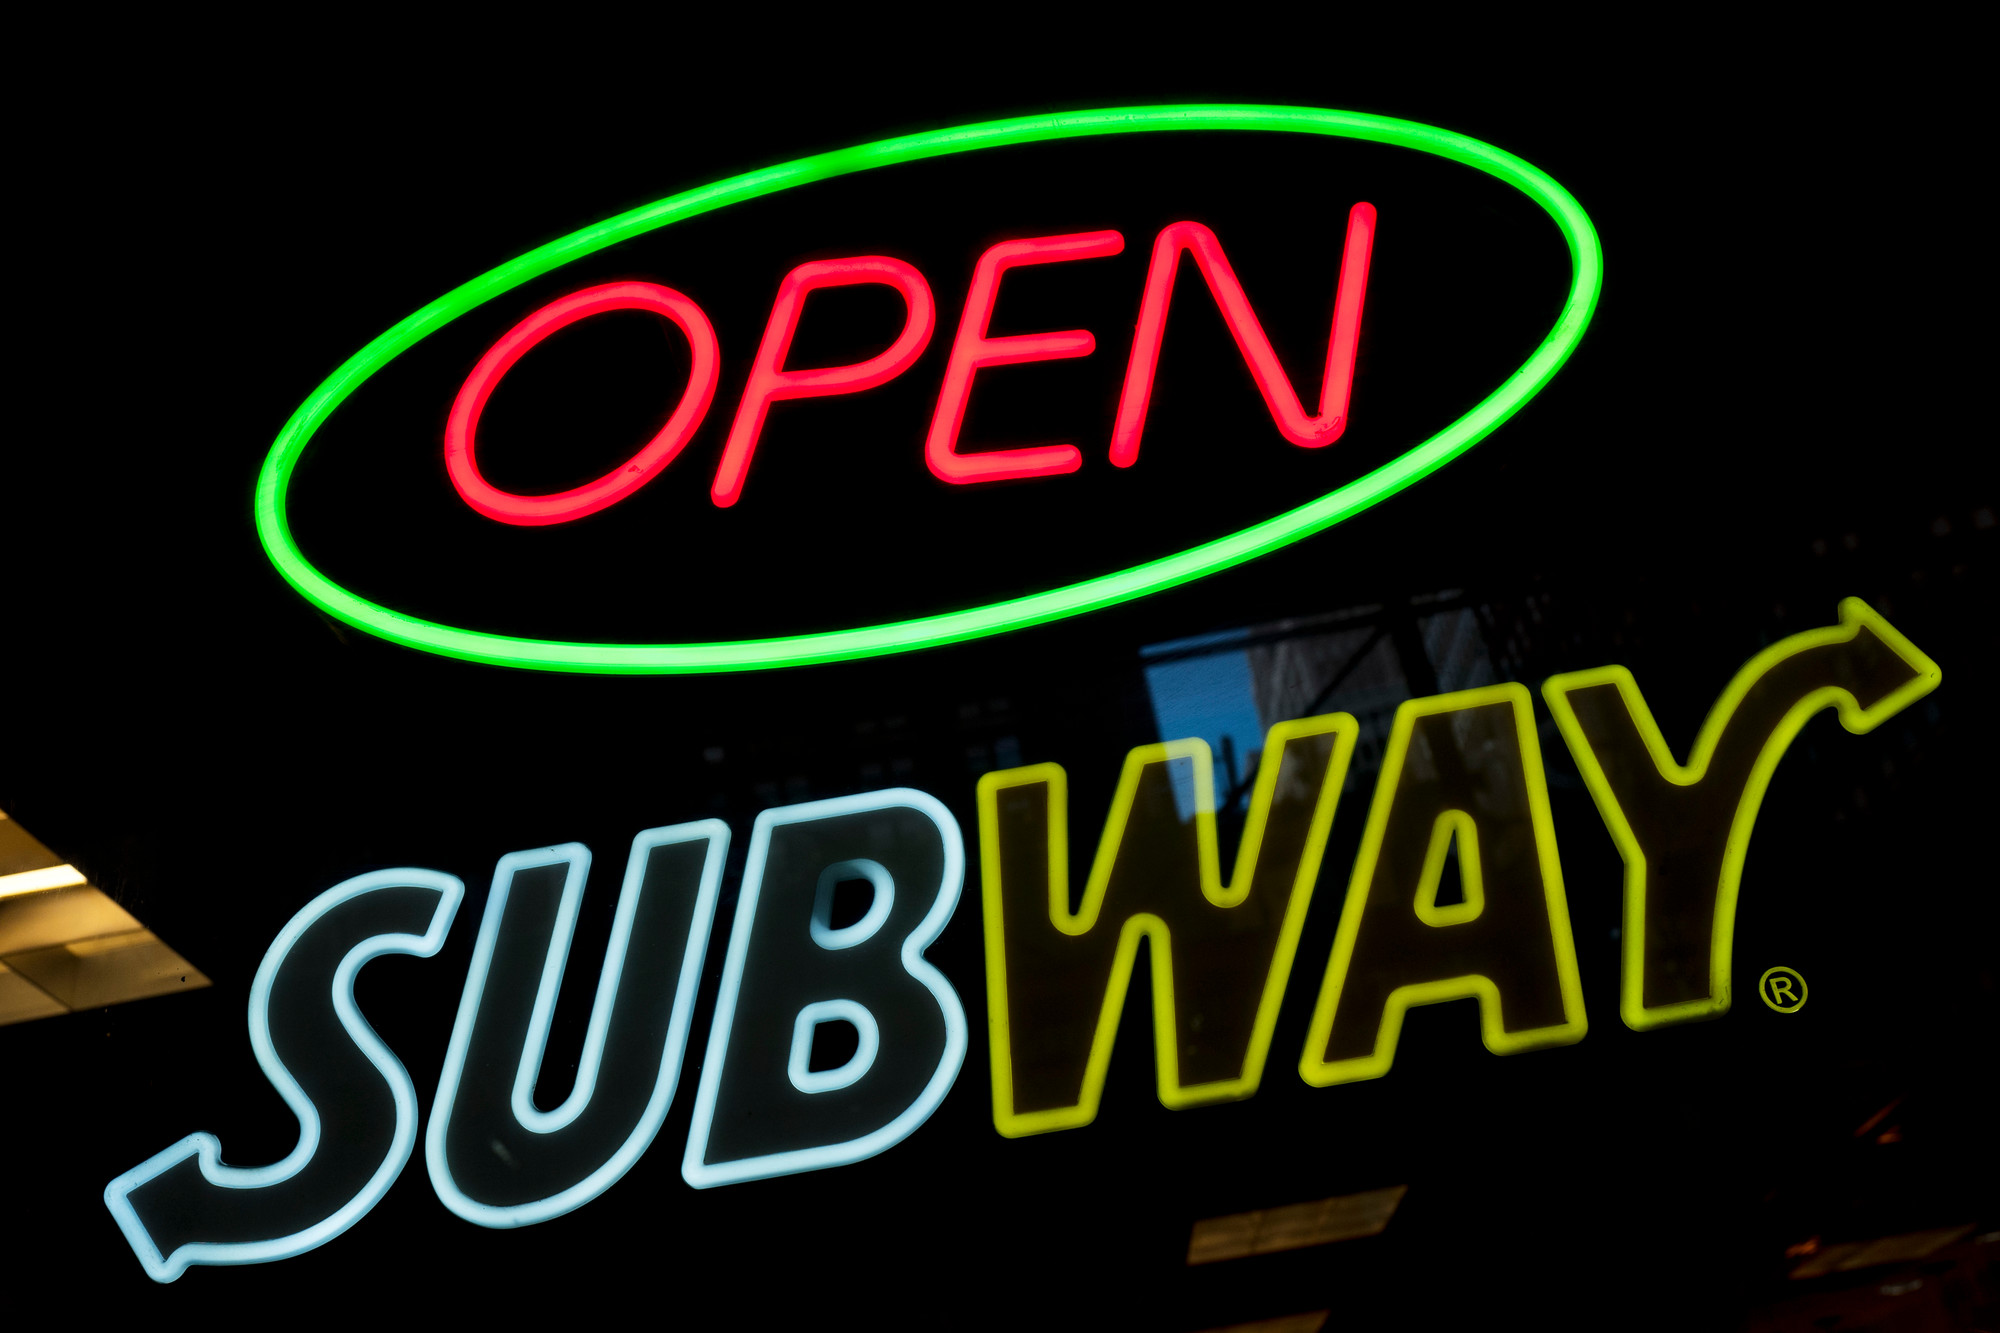 A Subway fast food restaurant's sign is shown in New York. Subway is changing up its loyalty program, letting customers earn $2 discounts instead of free Footlong sandwiches. The change, taking place in March 2018, is part of Subway's plan to lure people back to the sandwich chain.